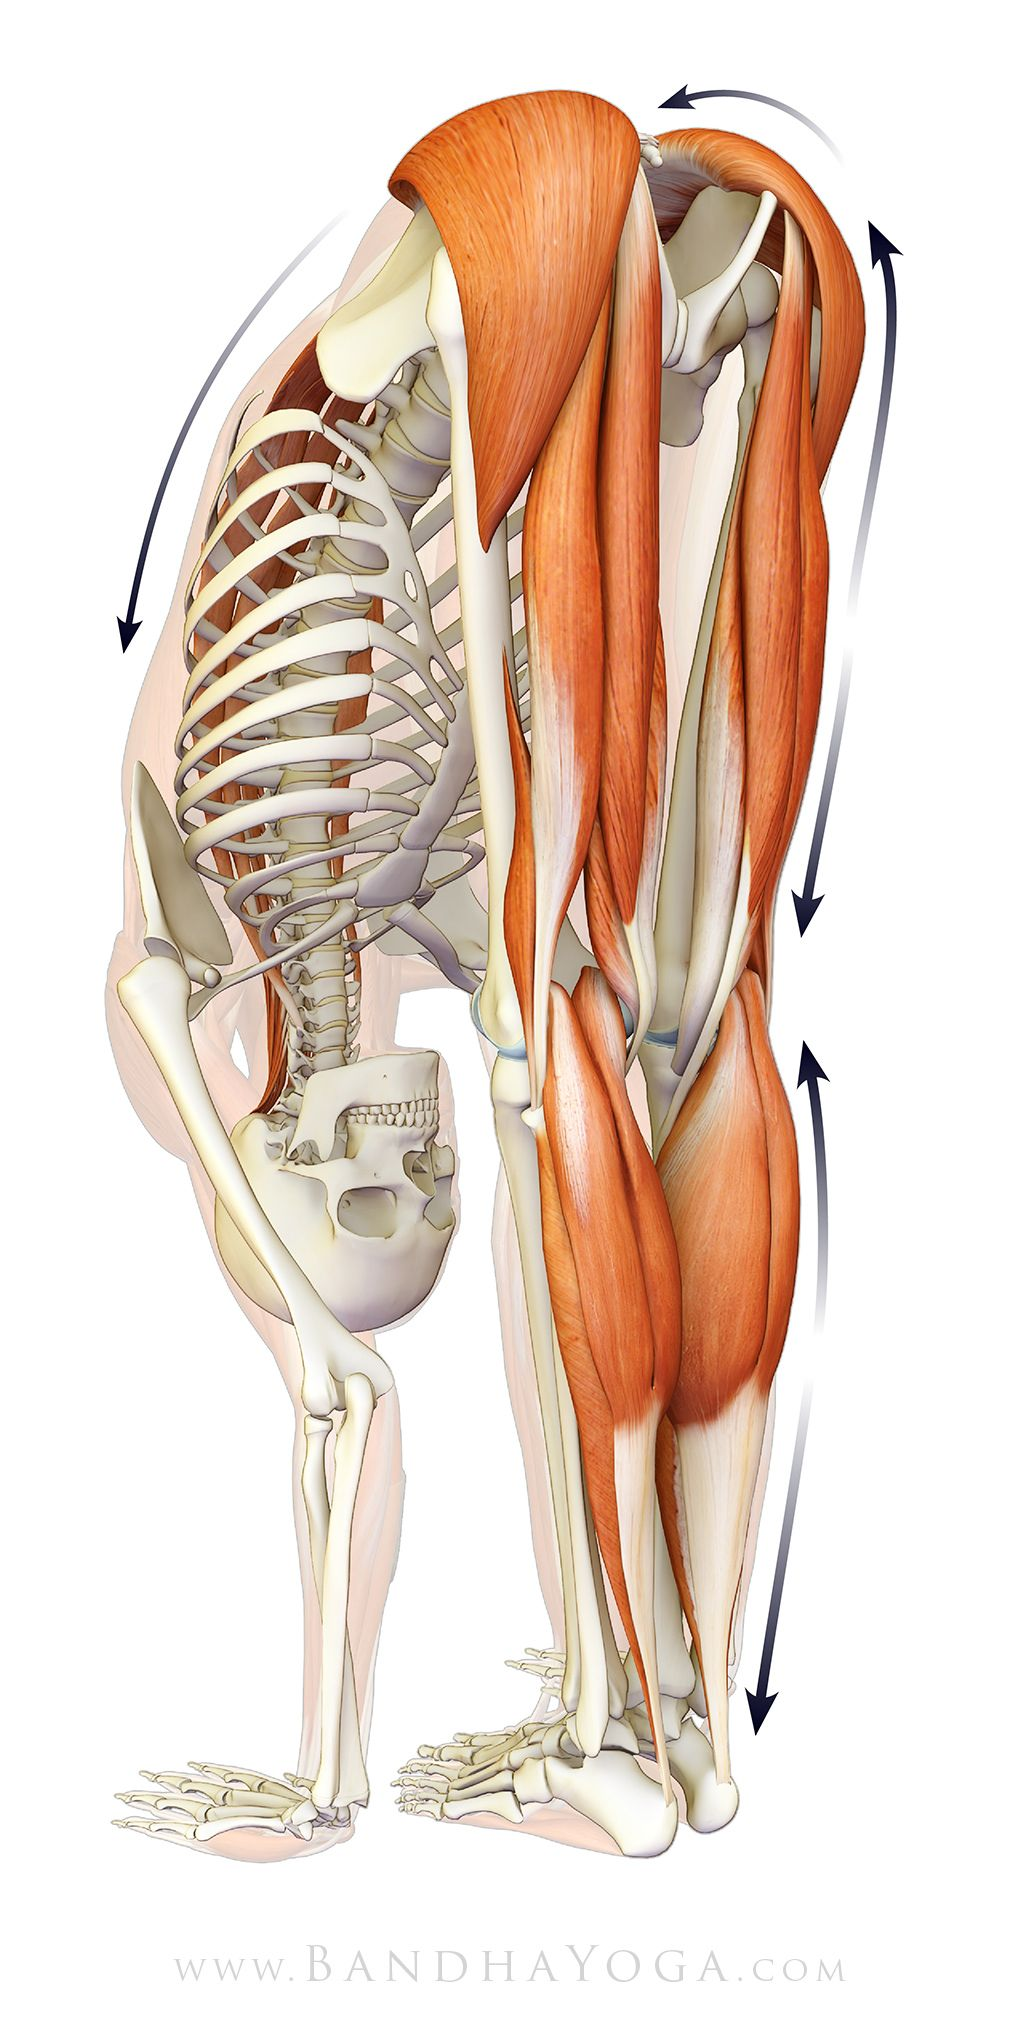 Plantar Fasciitis And Shin Splints Plantar Fasciitis Yoga And Anatomy